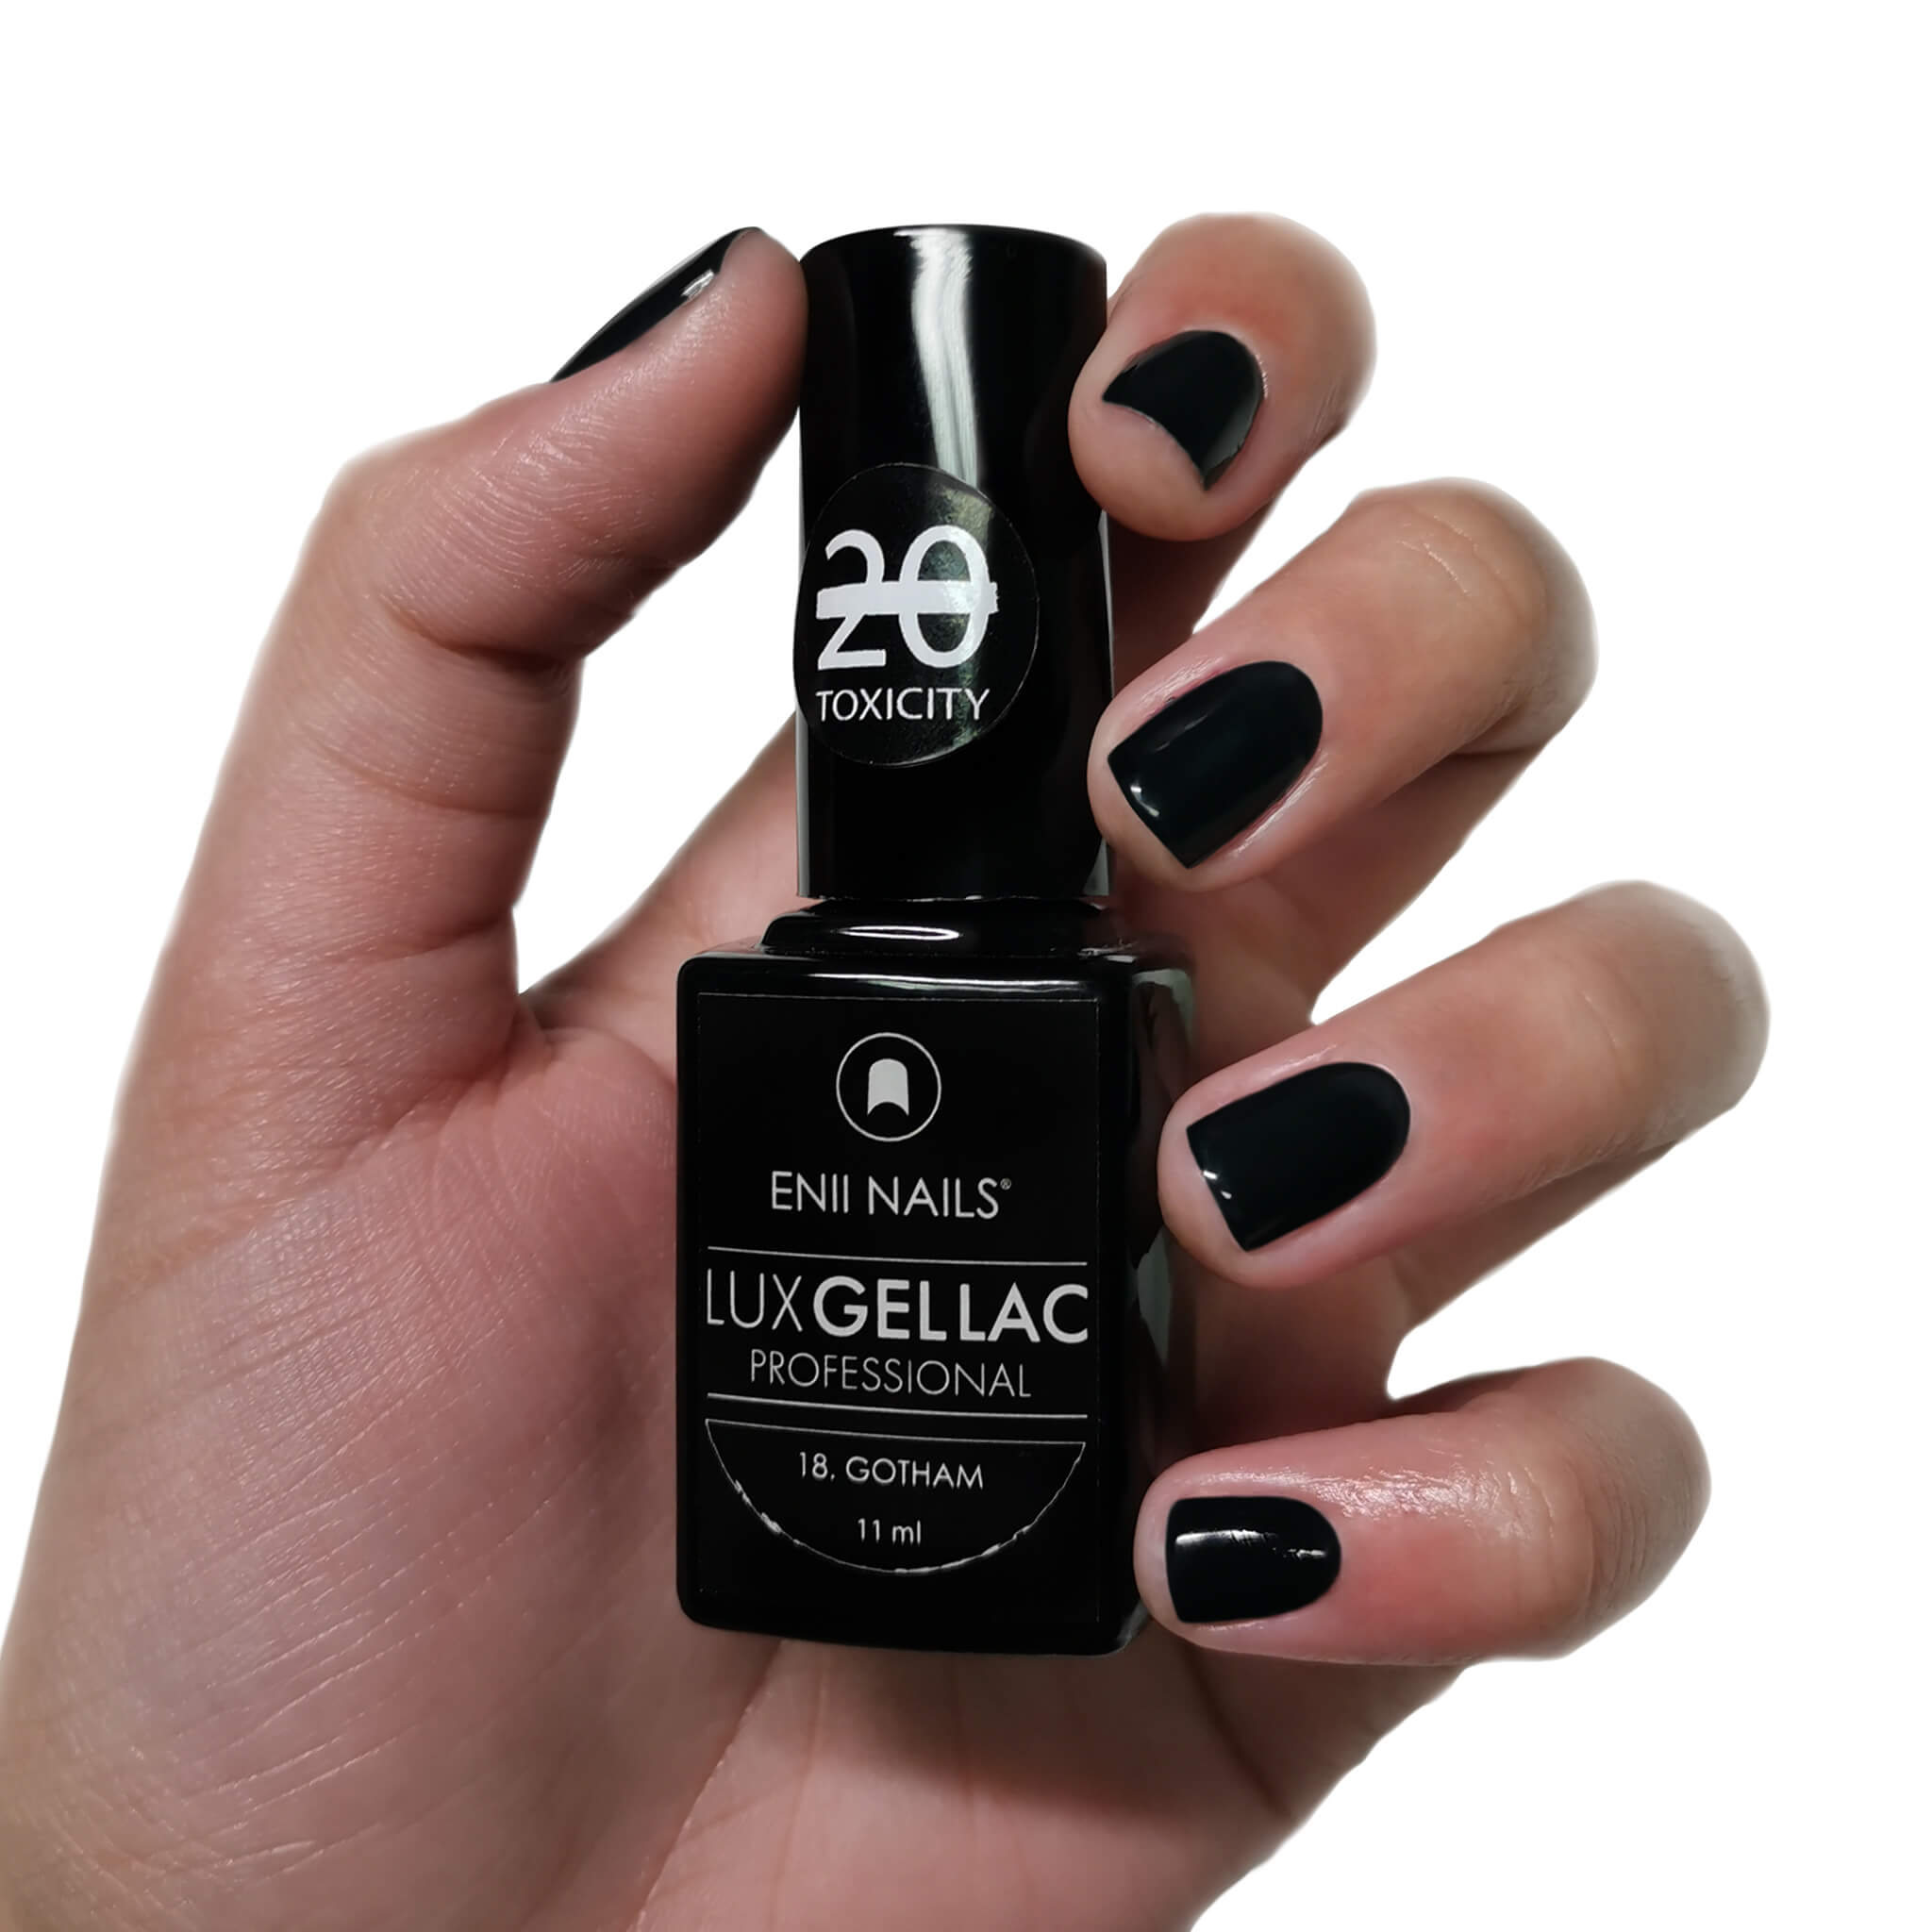 ENII-NAILS LUX GEL LAC 18. GOTHAM 11 ml